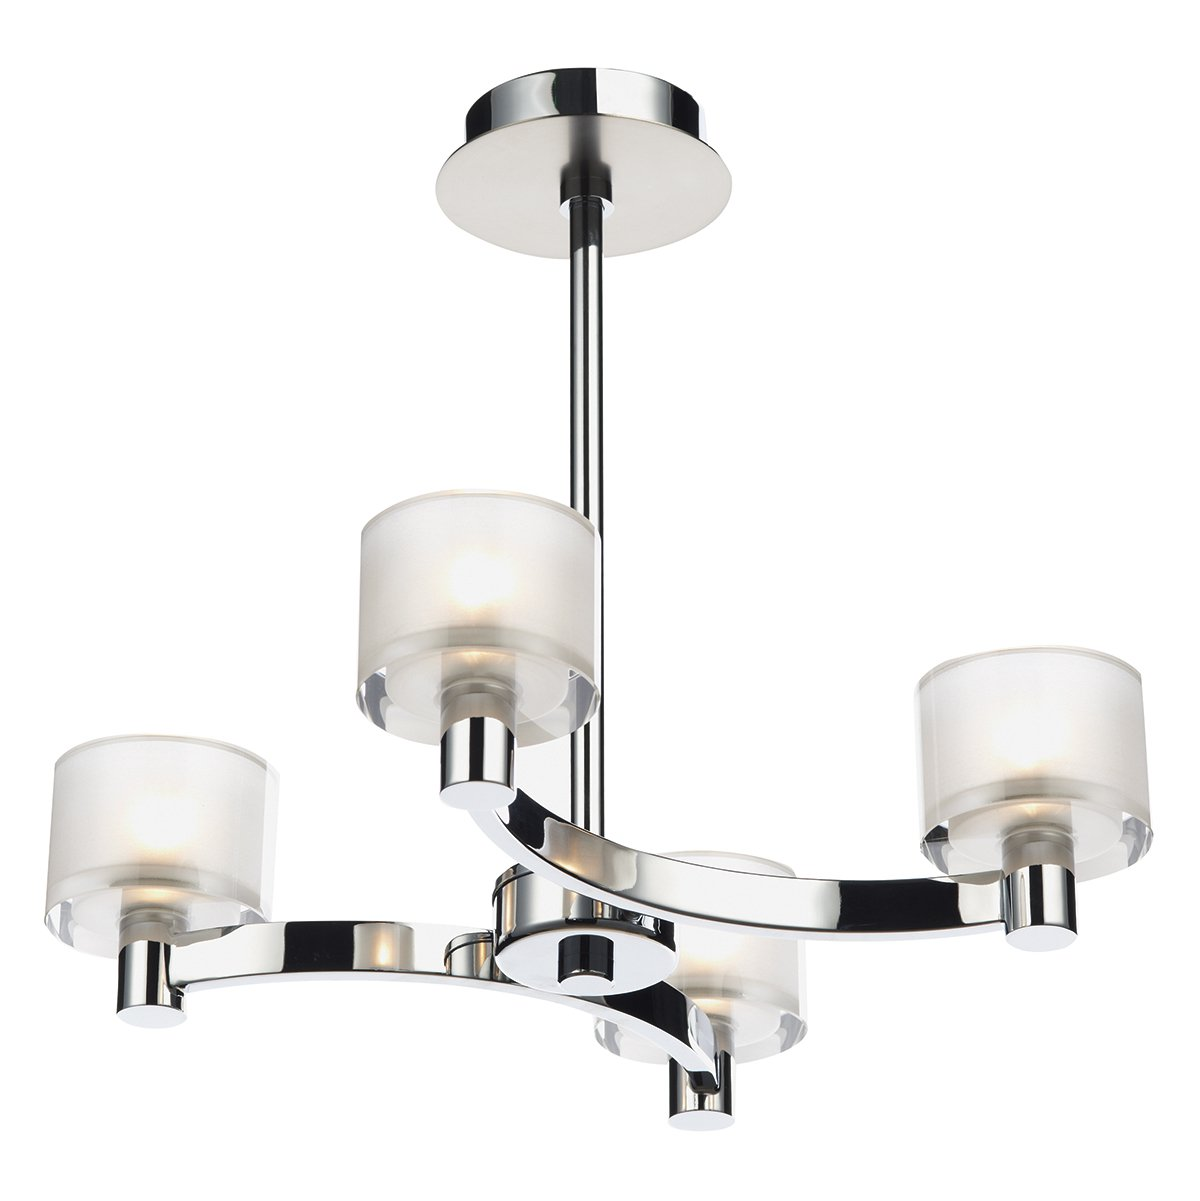 Dar Eton 4 Light Semi Flush Ceiling Light In Polished